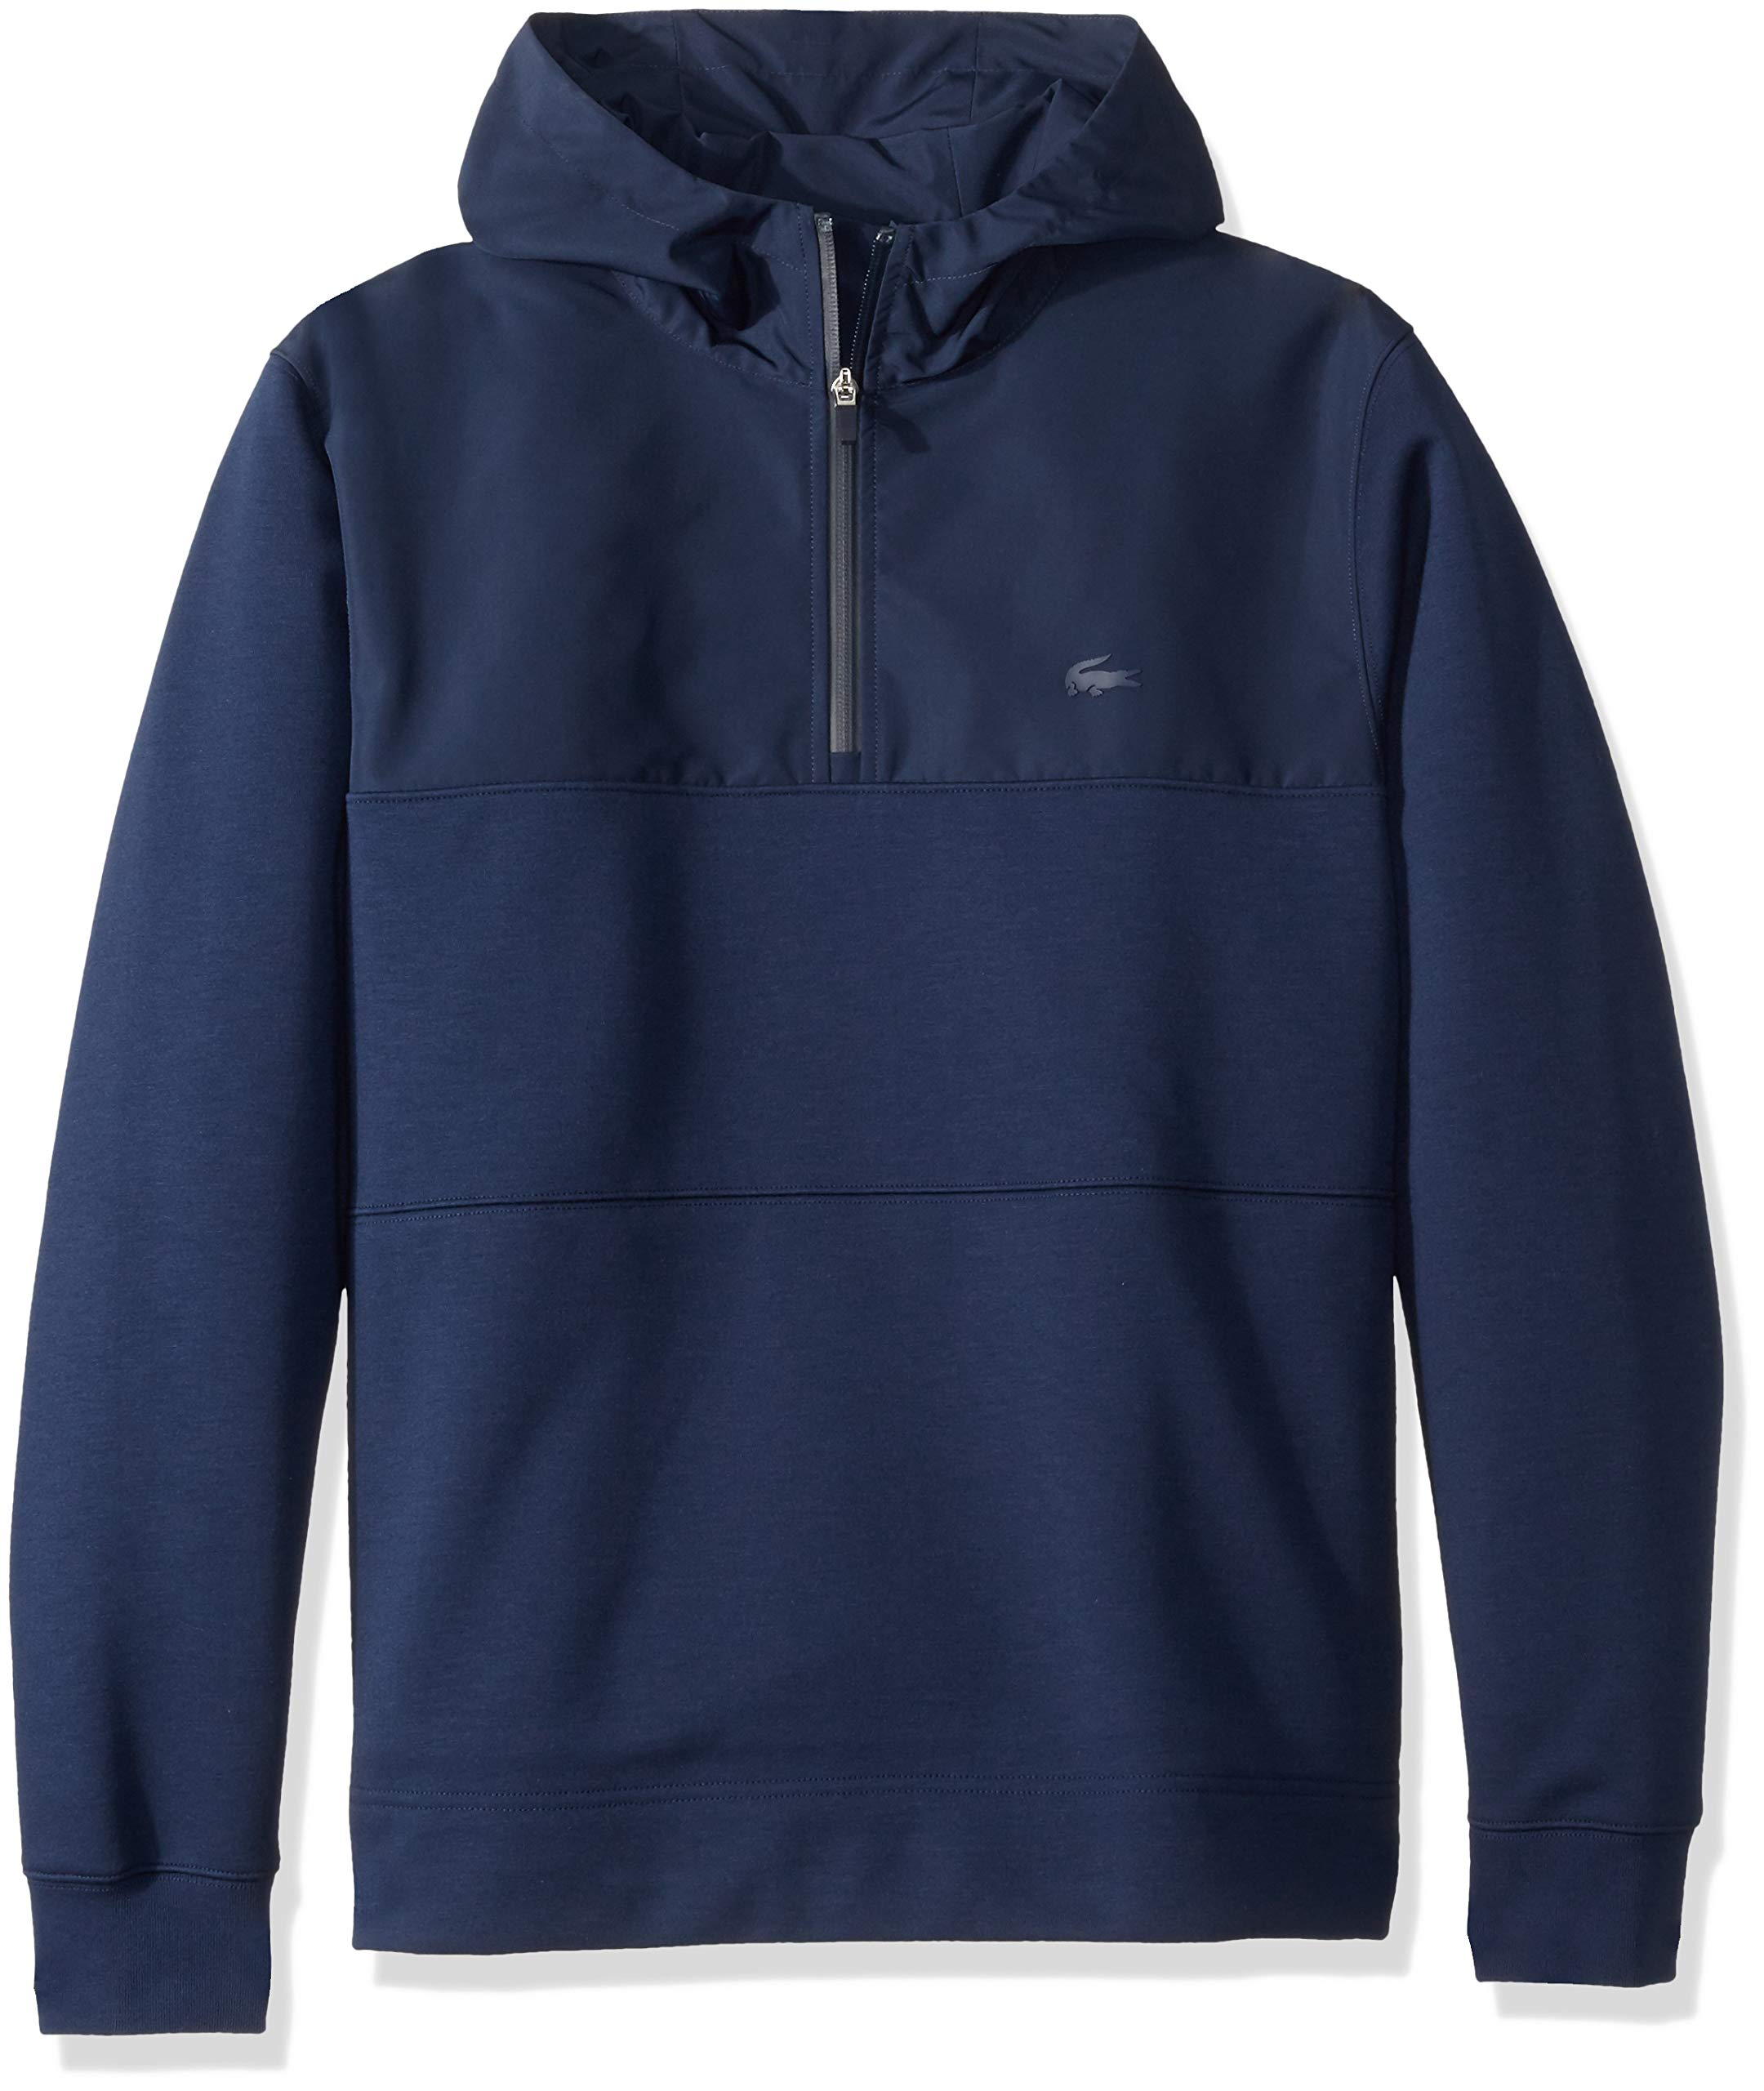 Lacoste Men's Long Sleeve Double Face Colorblock Hooded Sweatshirt, Blue/Navy, 4X-Large